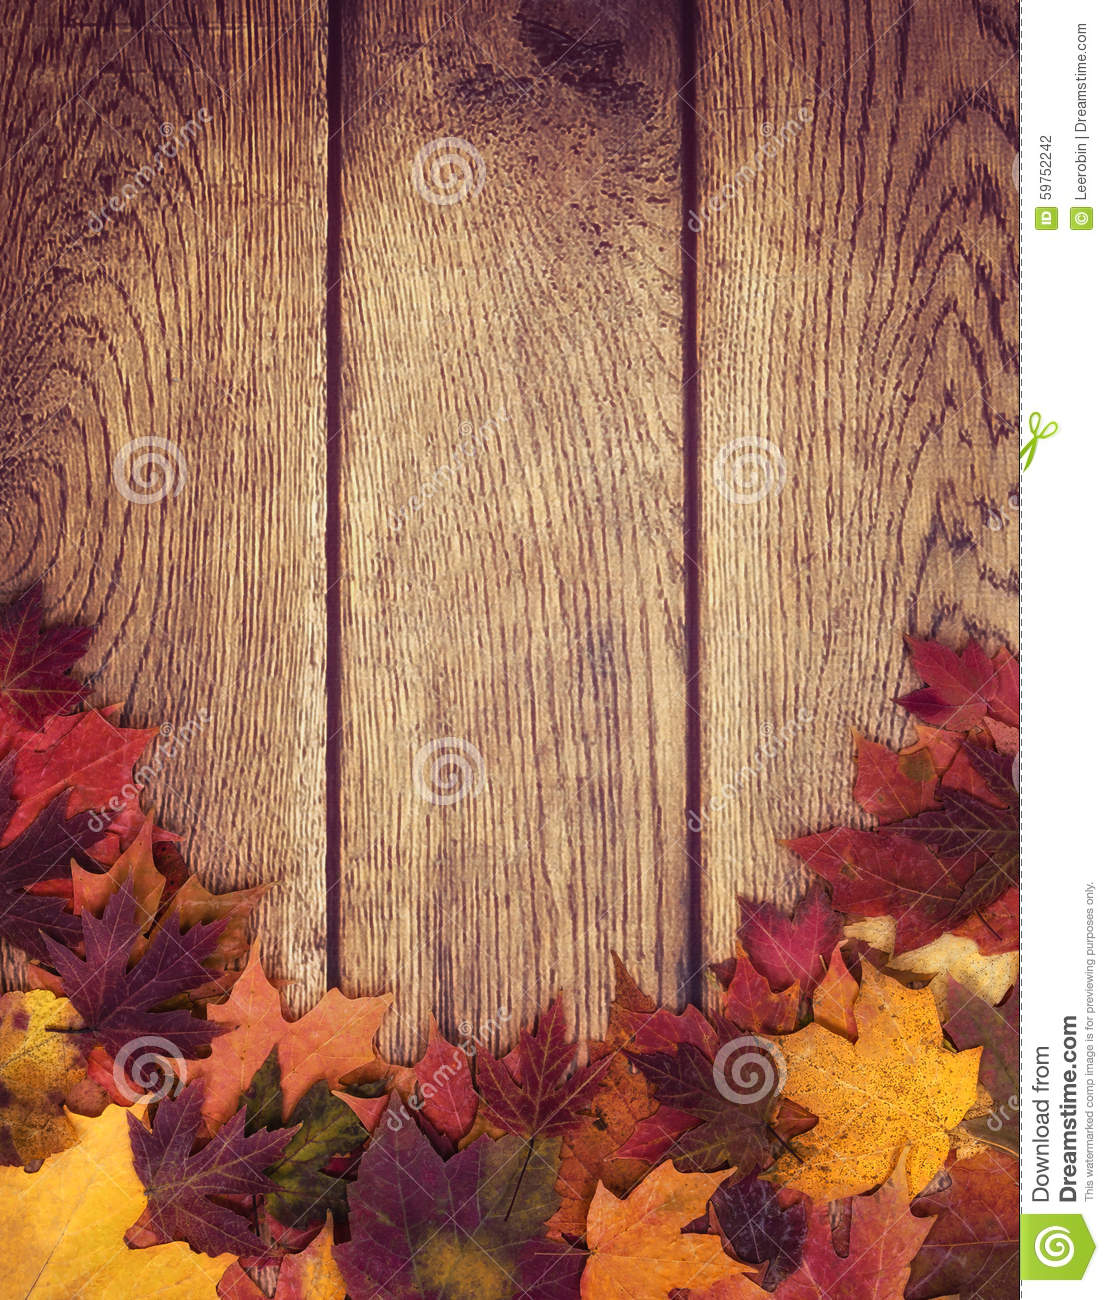 Fall Leaves Wallpaper Powerpoint Background Autumn Leaves Border Against Wood Background Stock Photo